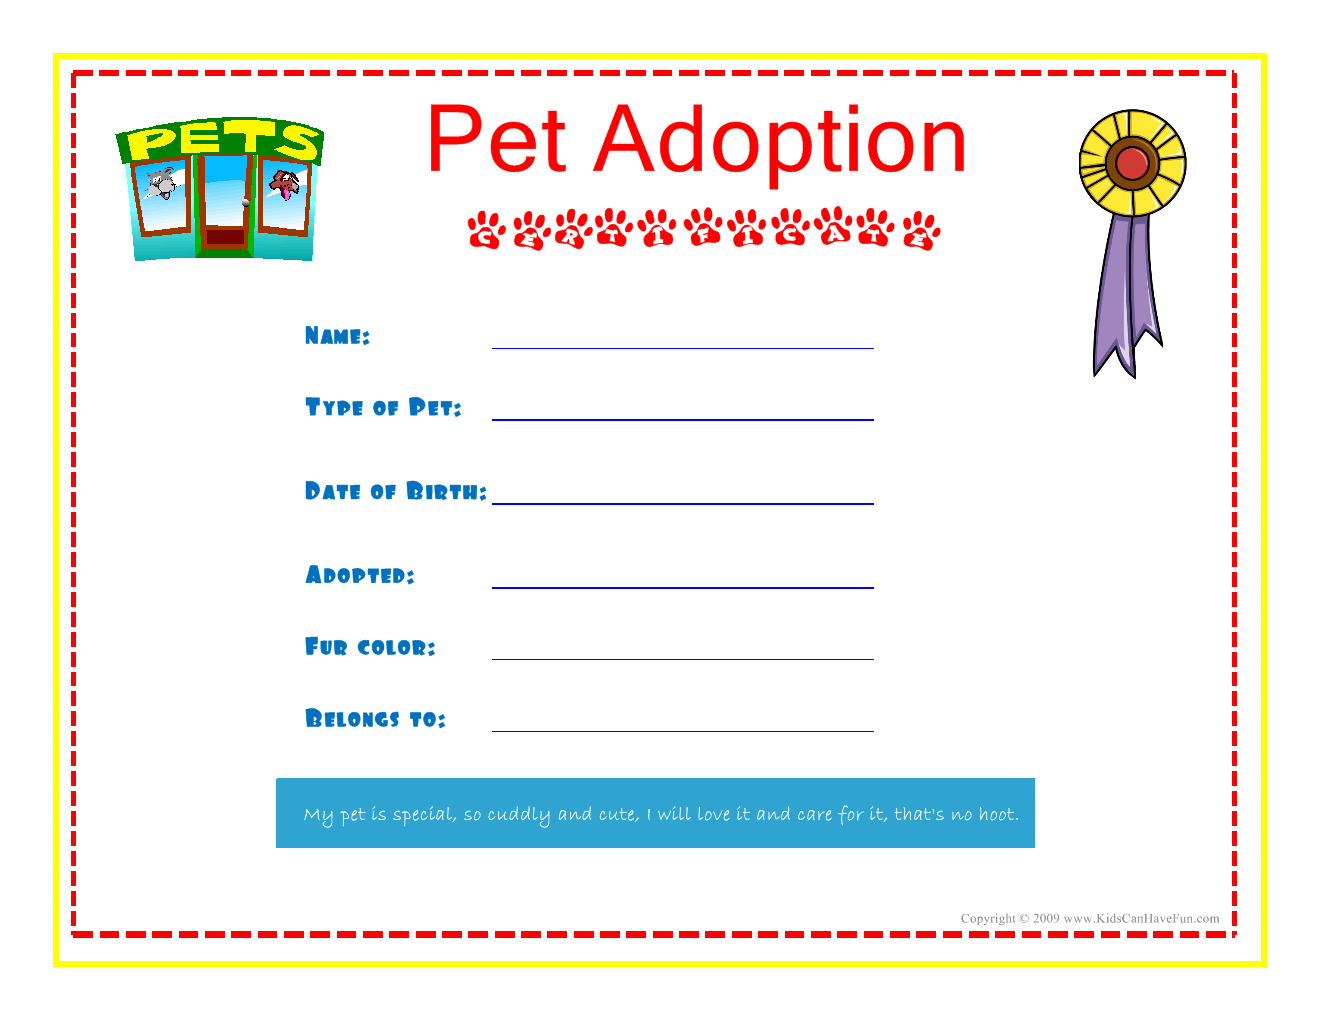 Pet Adoption Certificate For The Kids To Fill Out About Their Pet - Fake Adoption Certificate Free Printable